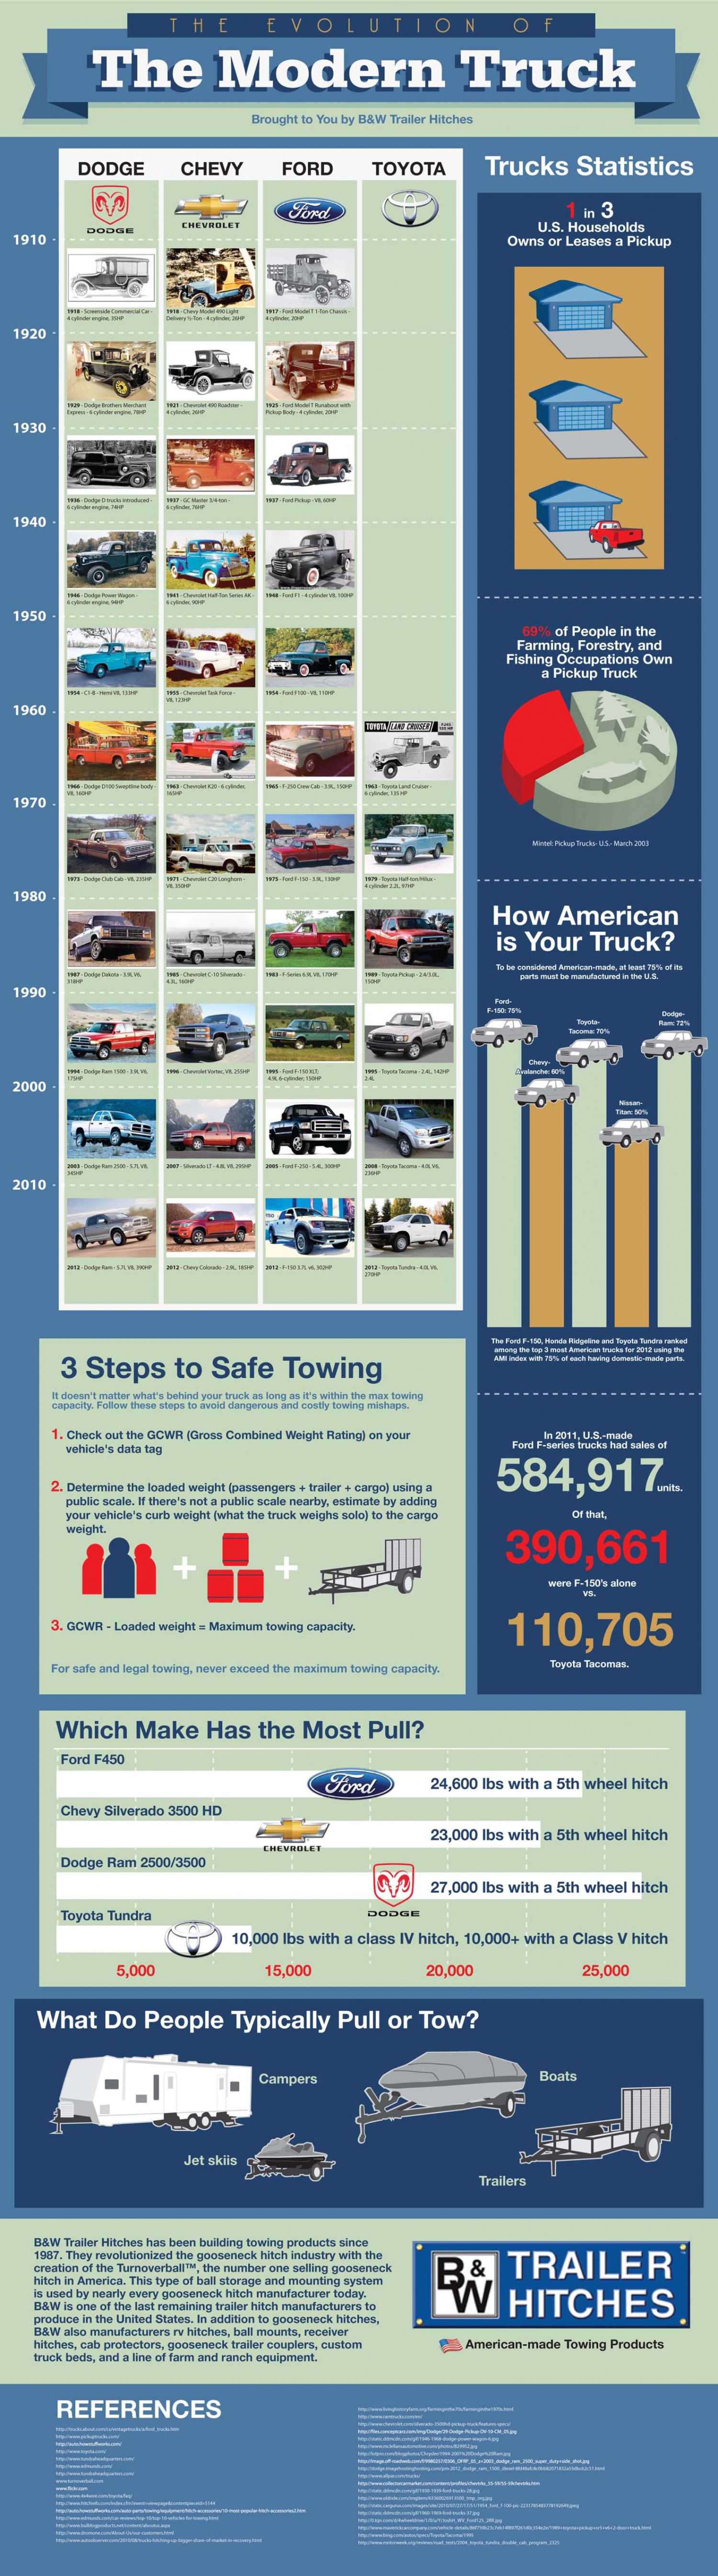 The Evolution of the Modern Truck Infographic